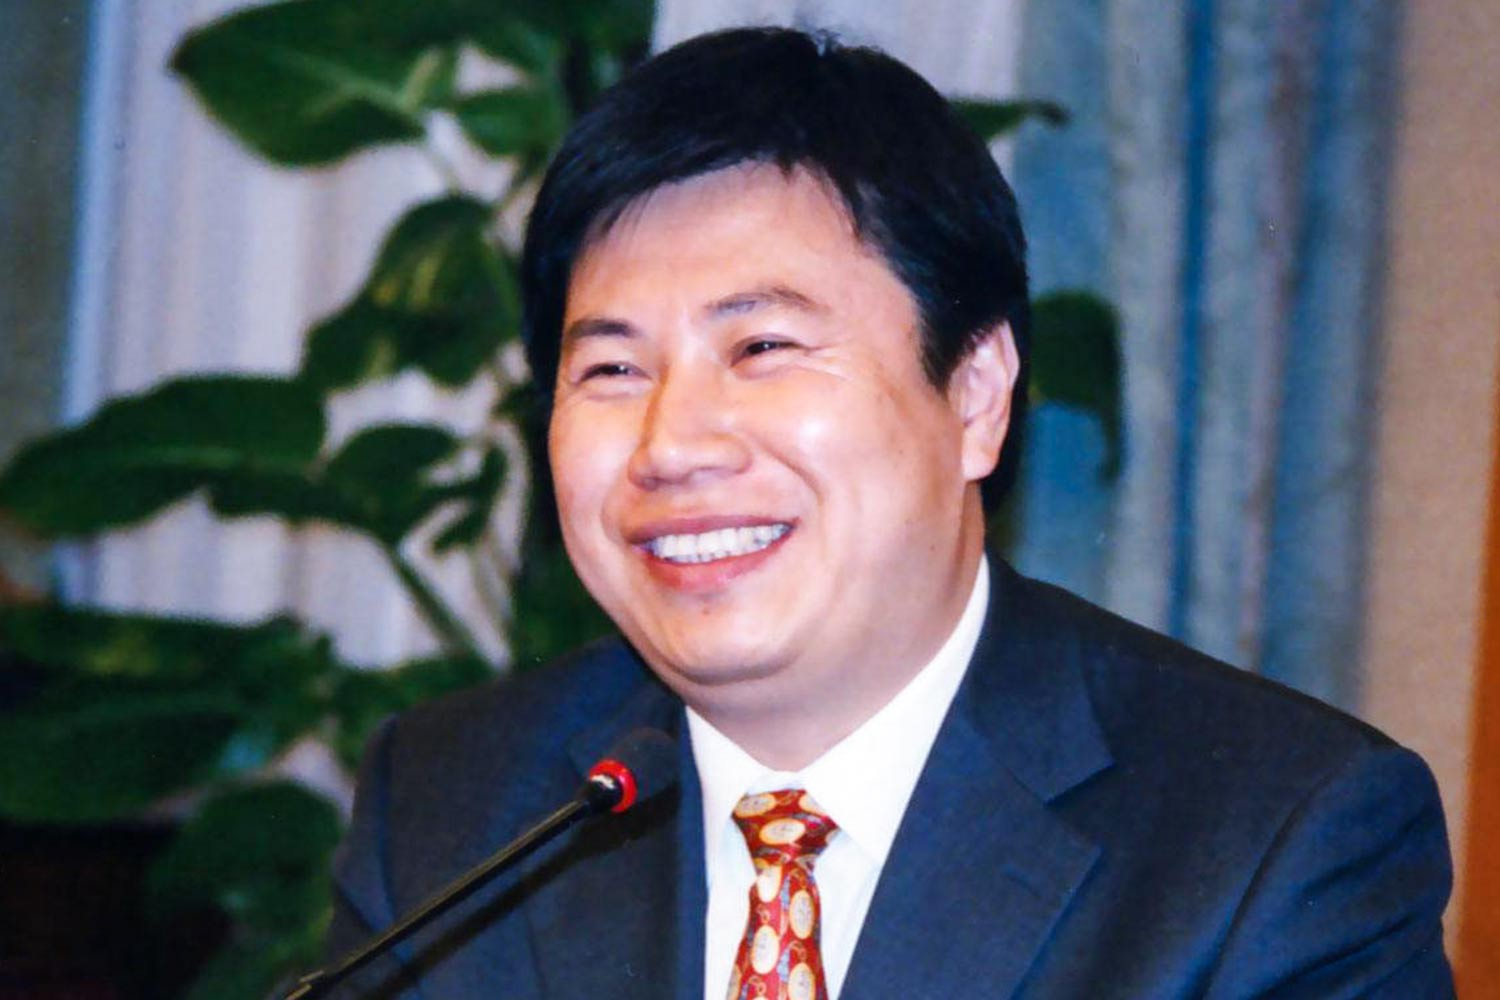 Dr. Wu, a well-known expert in laser research